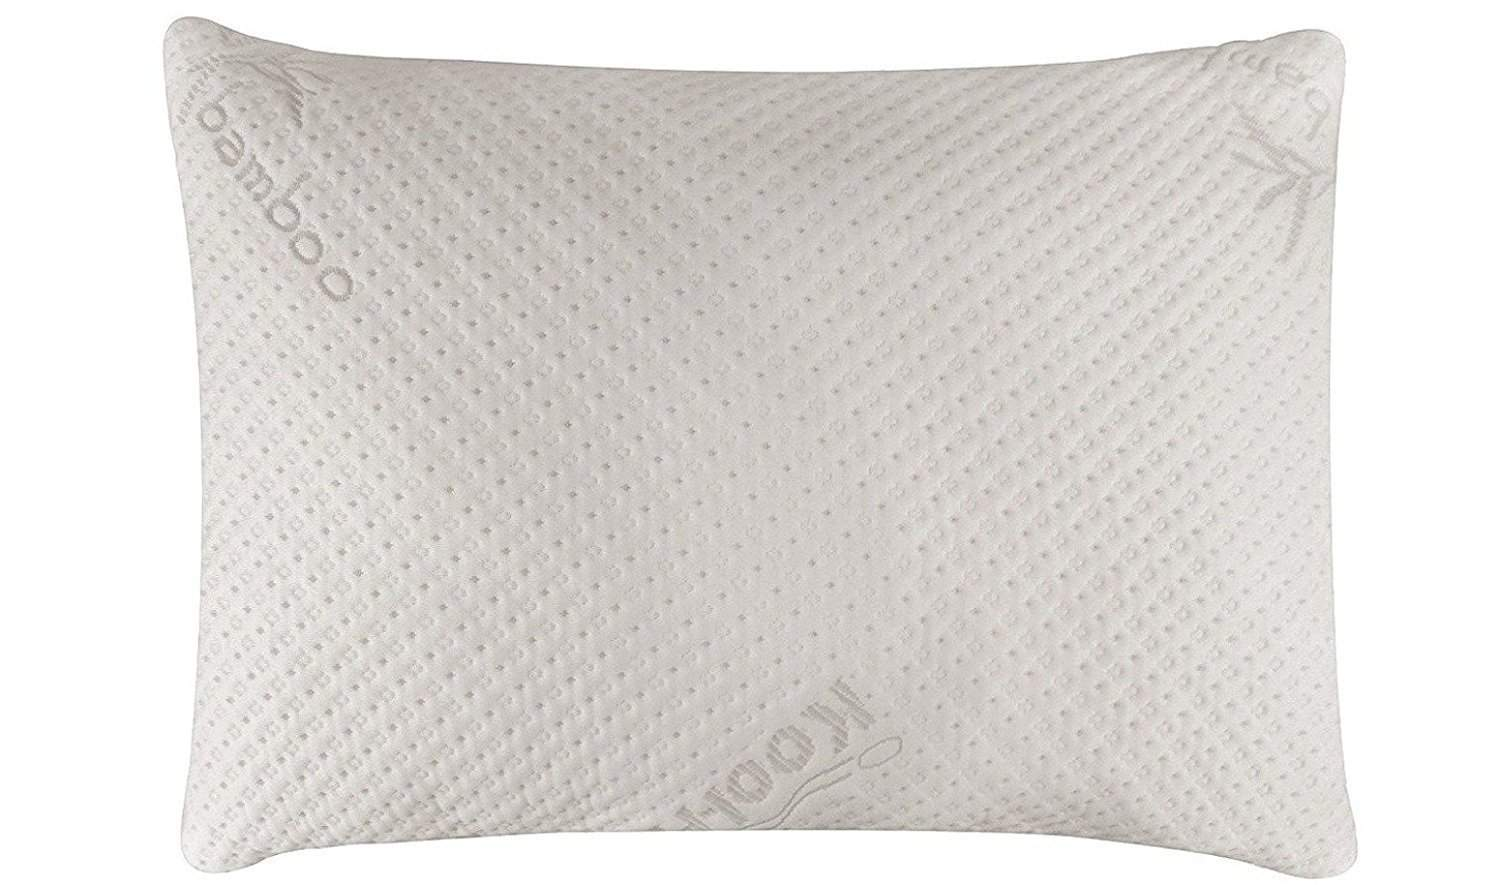 the Snuggle-Pedic Ultra-Luxury is the best cooling gel pillow